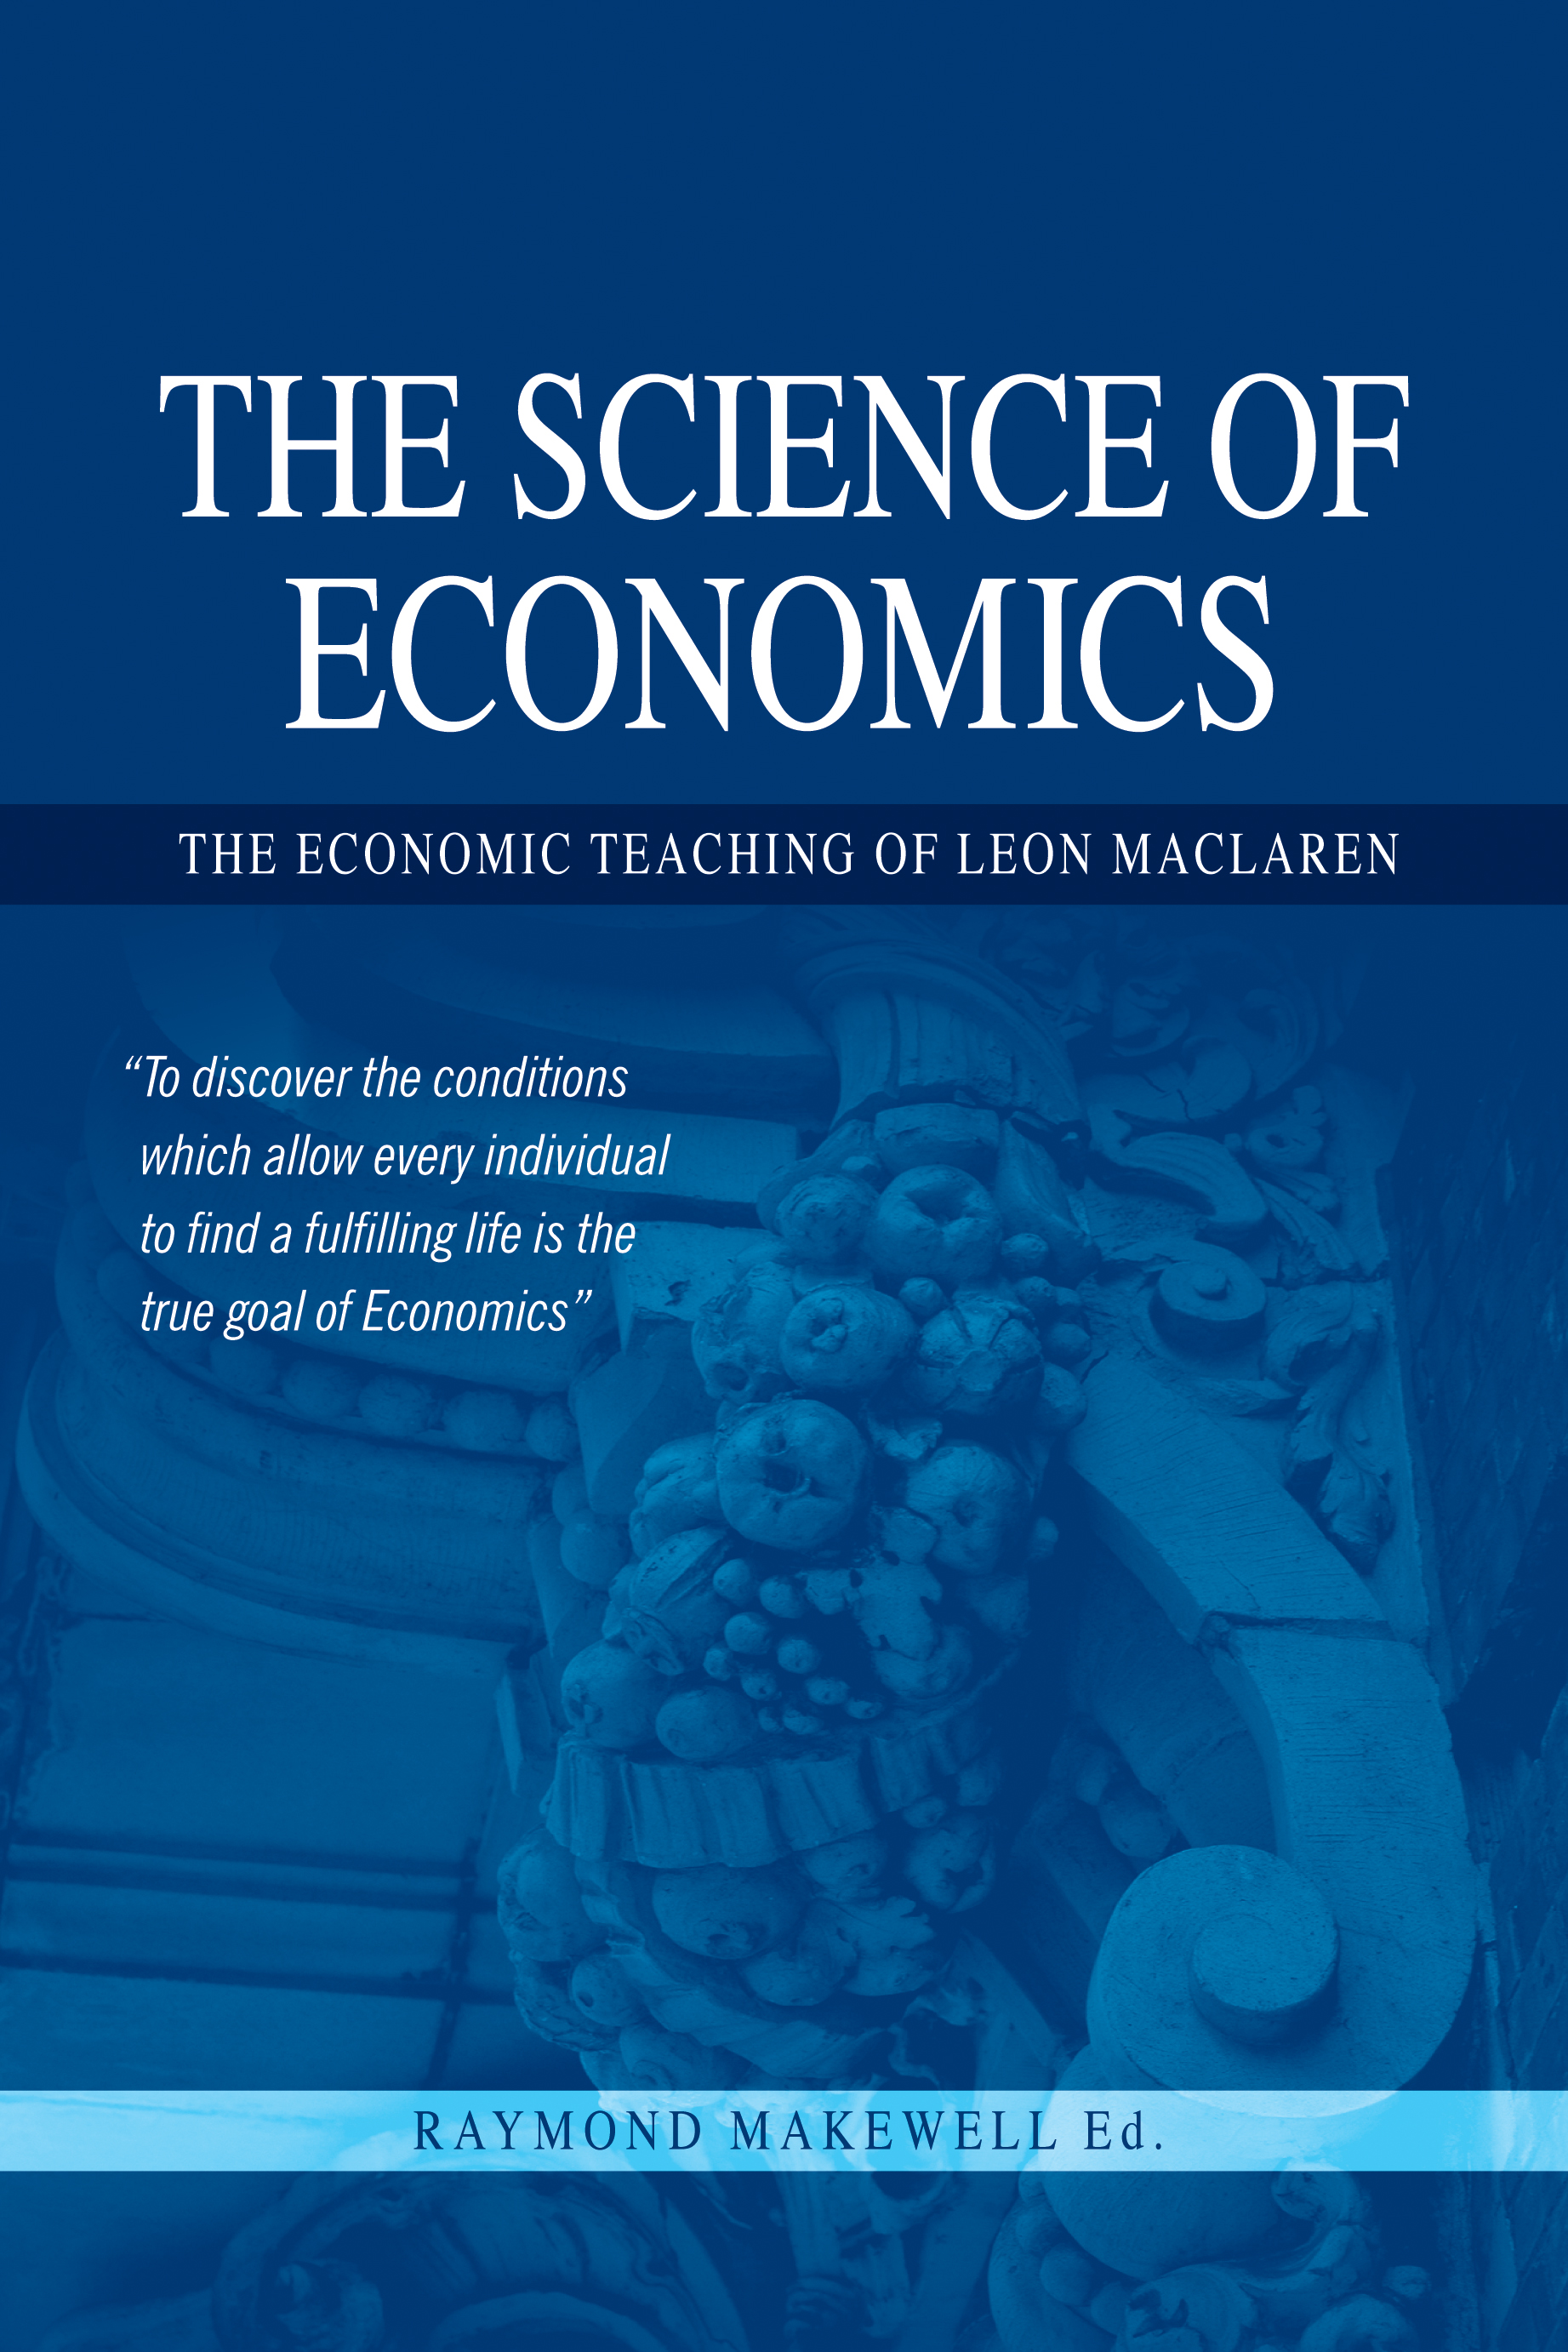 The Science of Economics